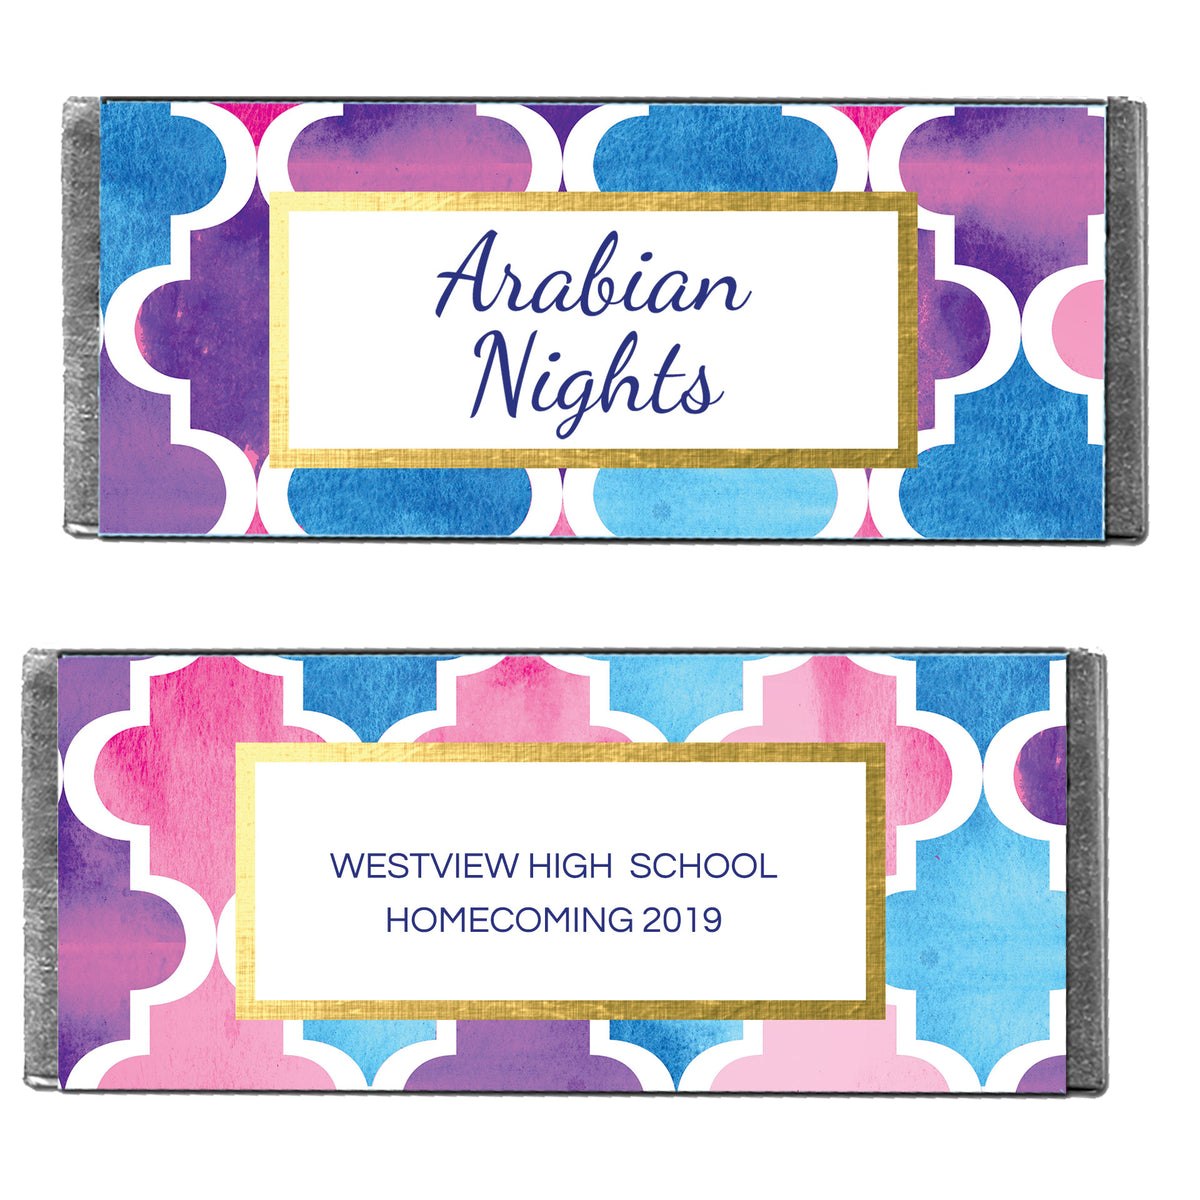 Hershey's Chocolate Arabian Nights Personalized Candy Bars